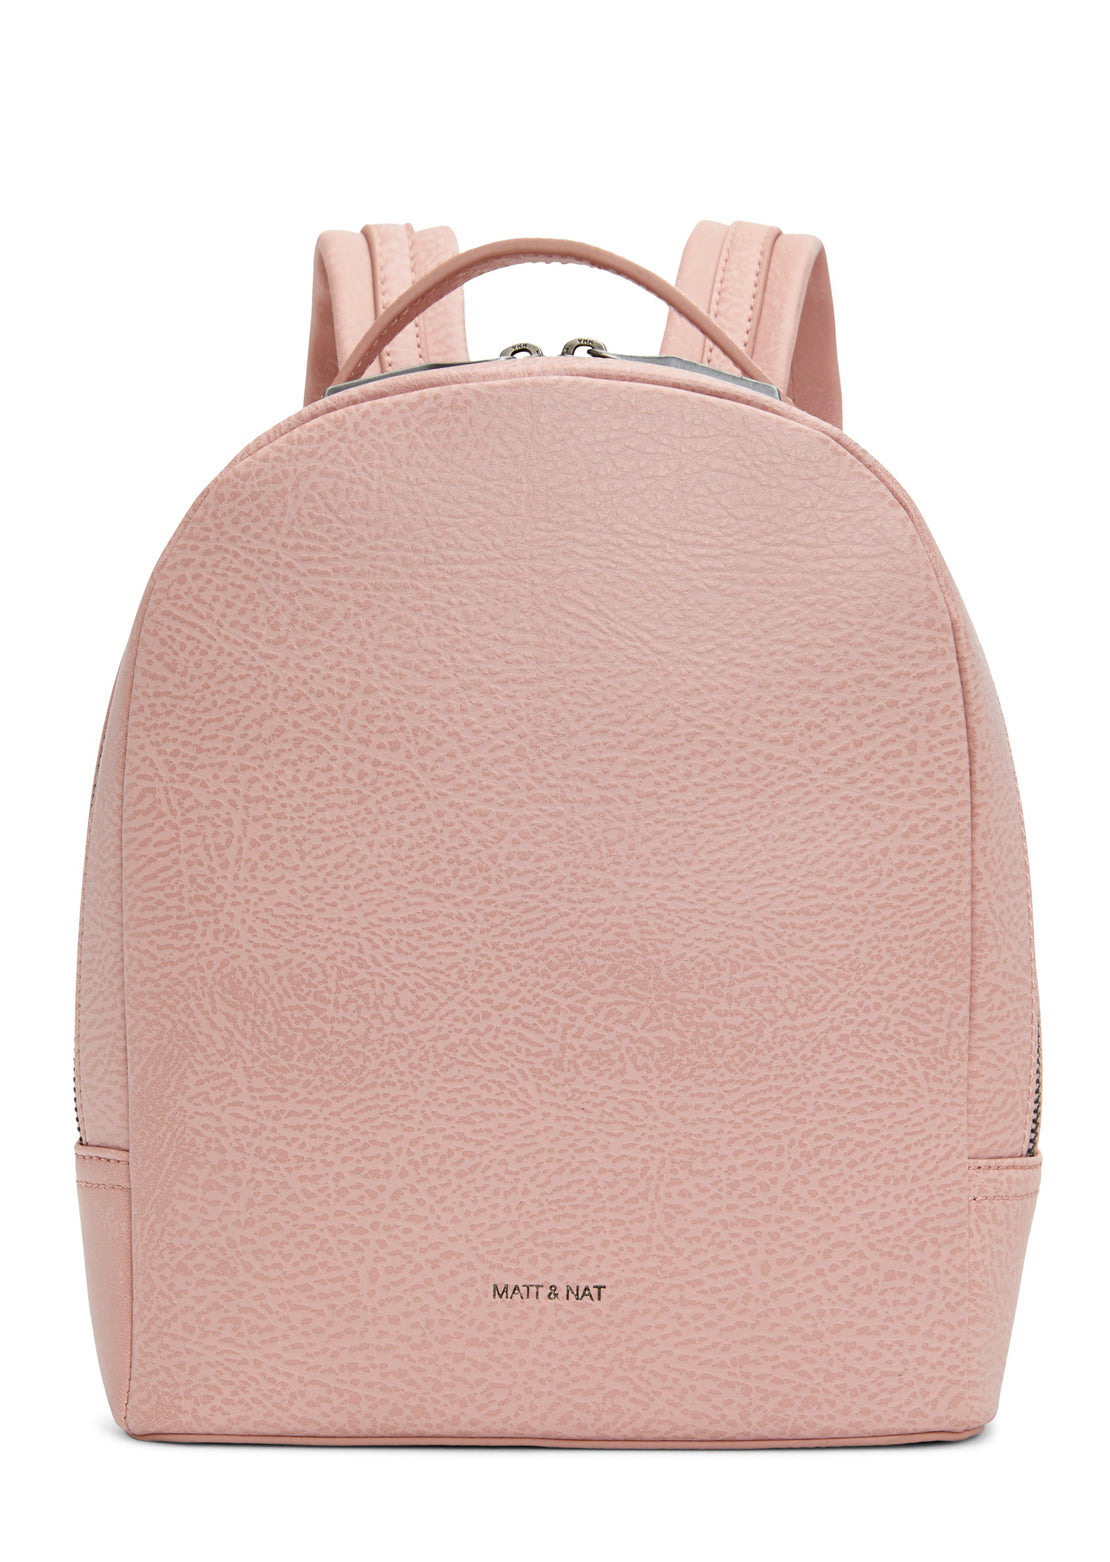 Matt & Nat Olly Dwell Collection Backpack Pebble